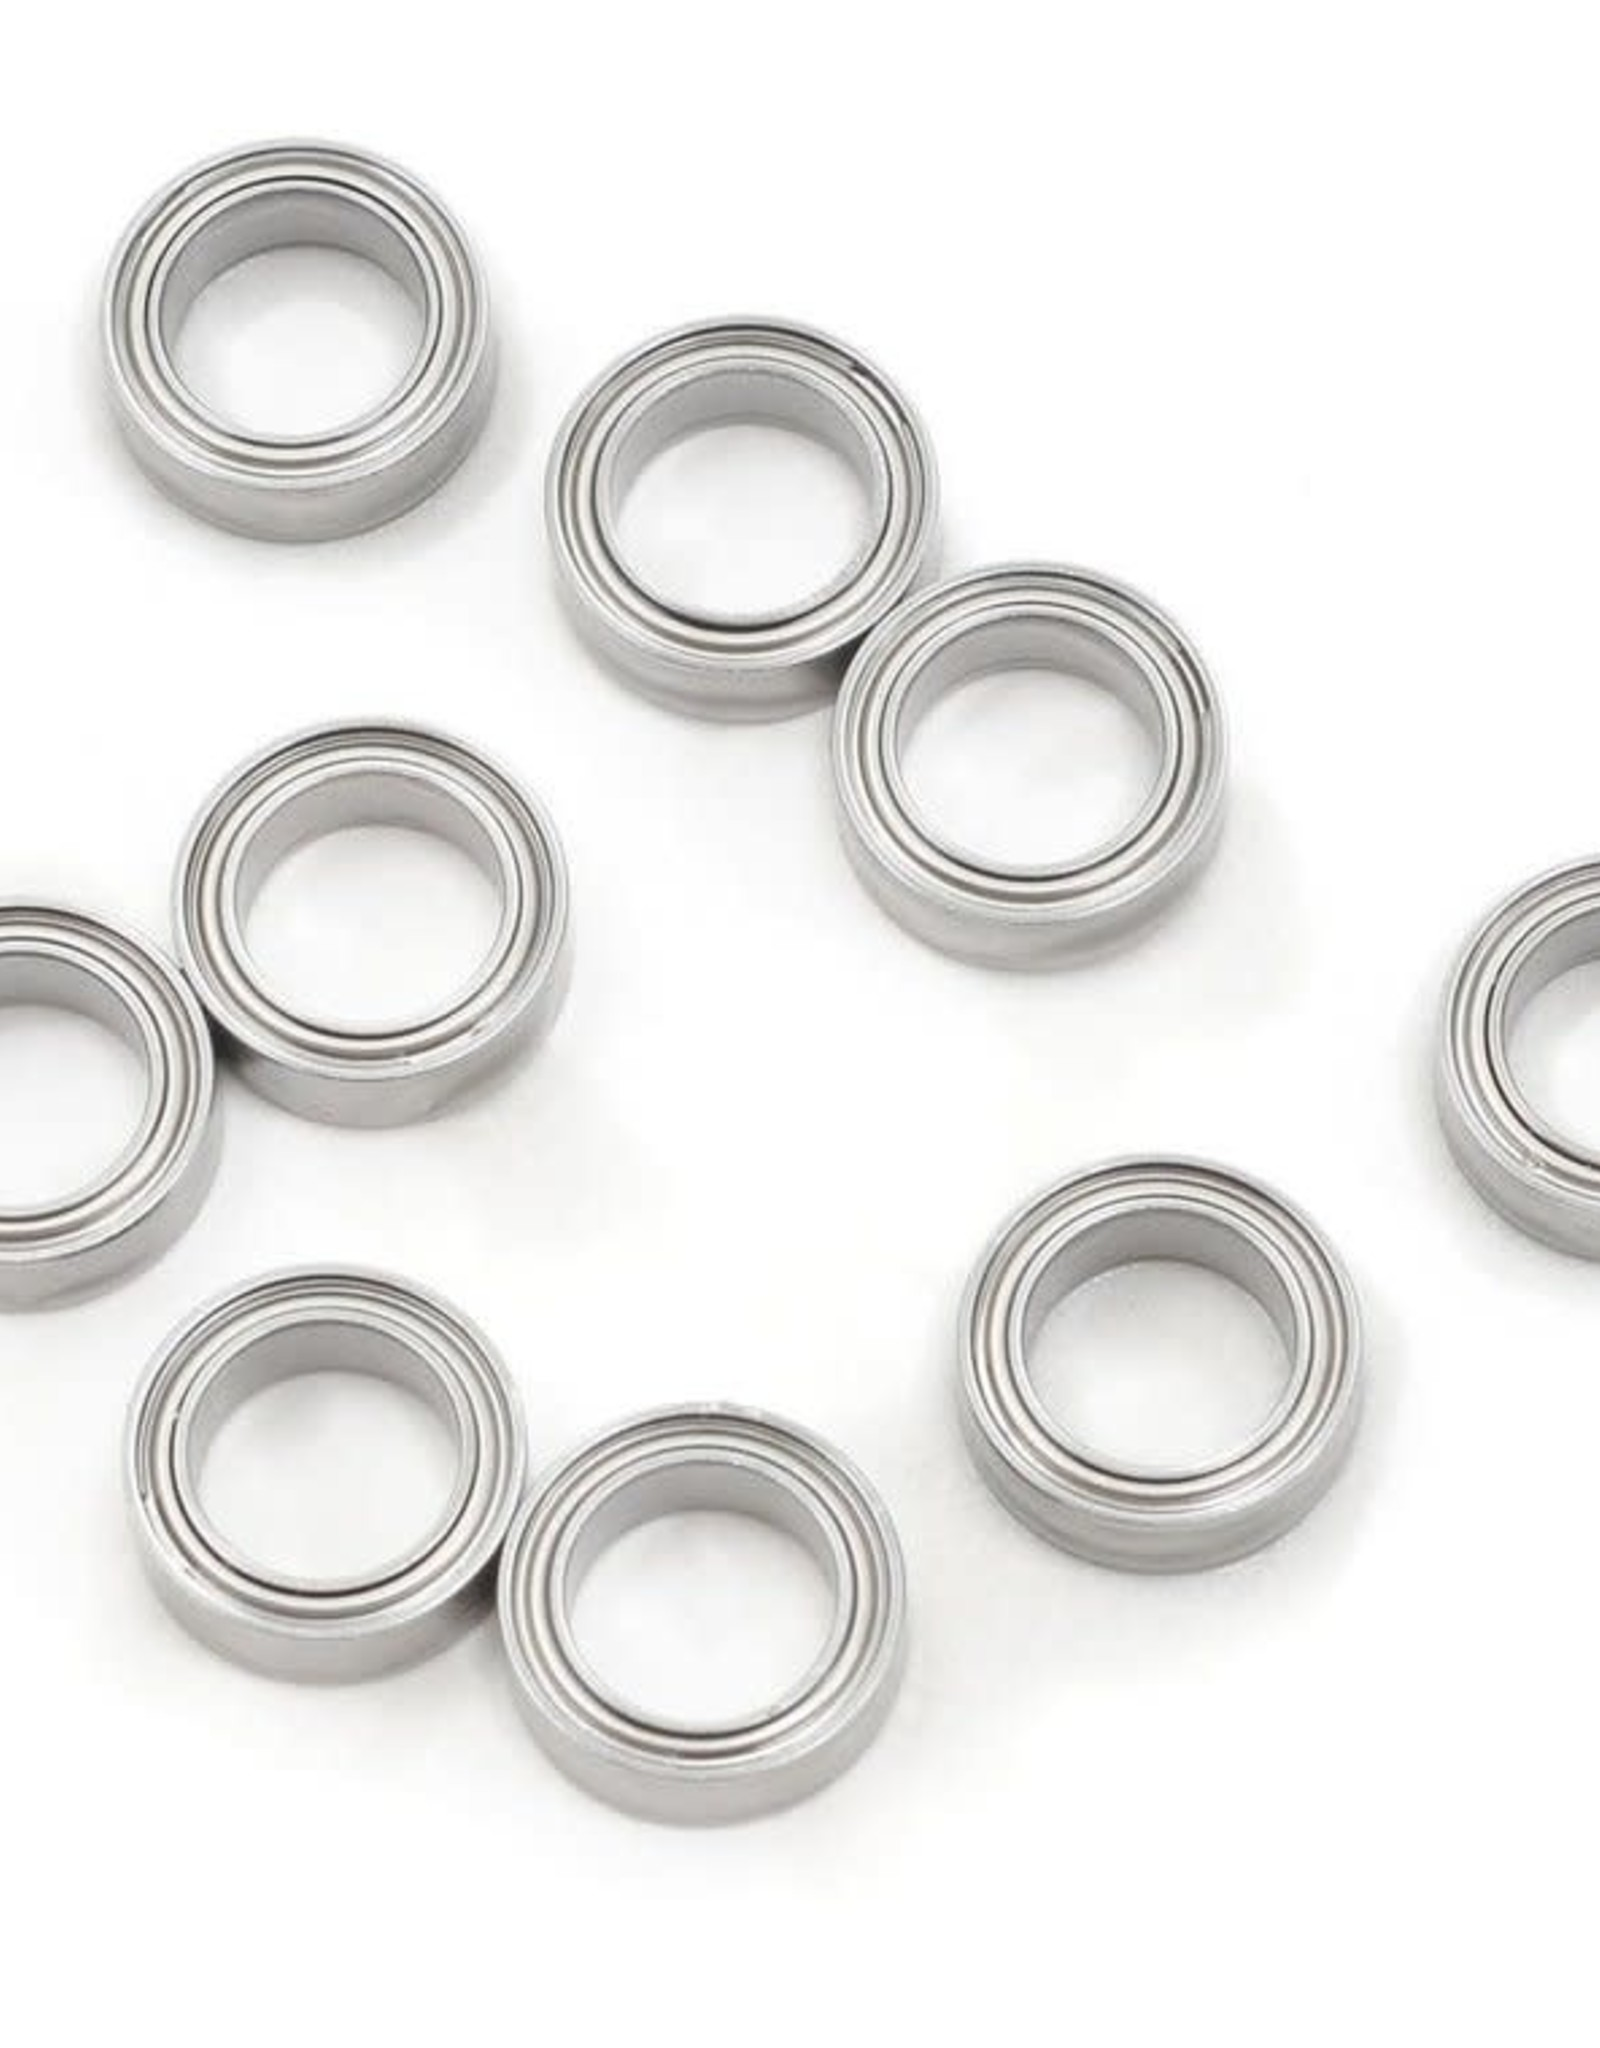 """CRC CRC 1/4x3/8"""" Unflanged Axle Bearings"""